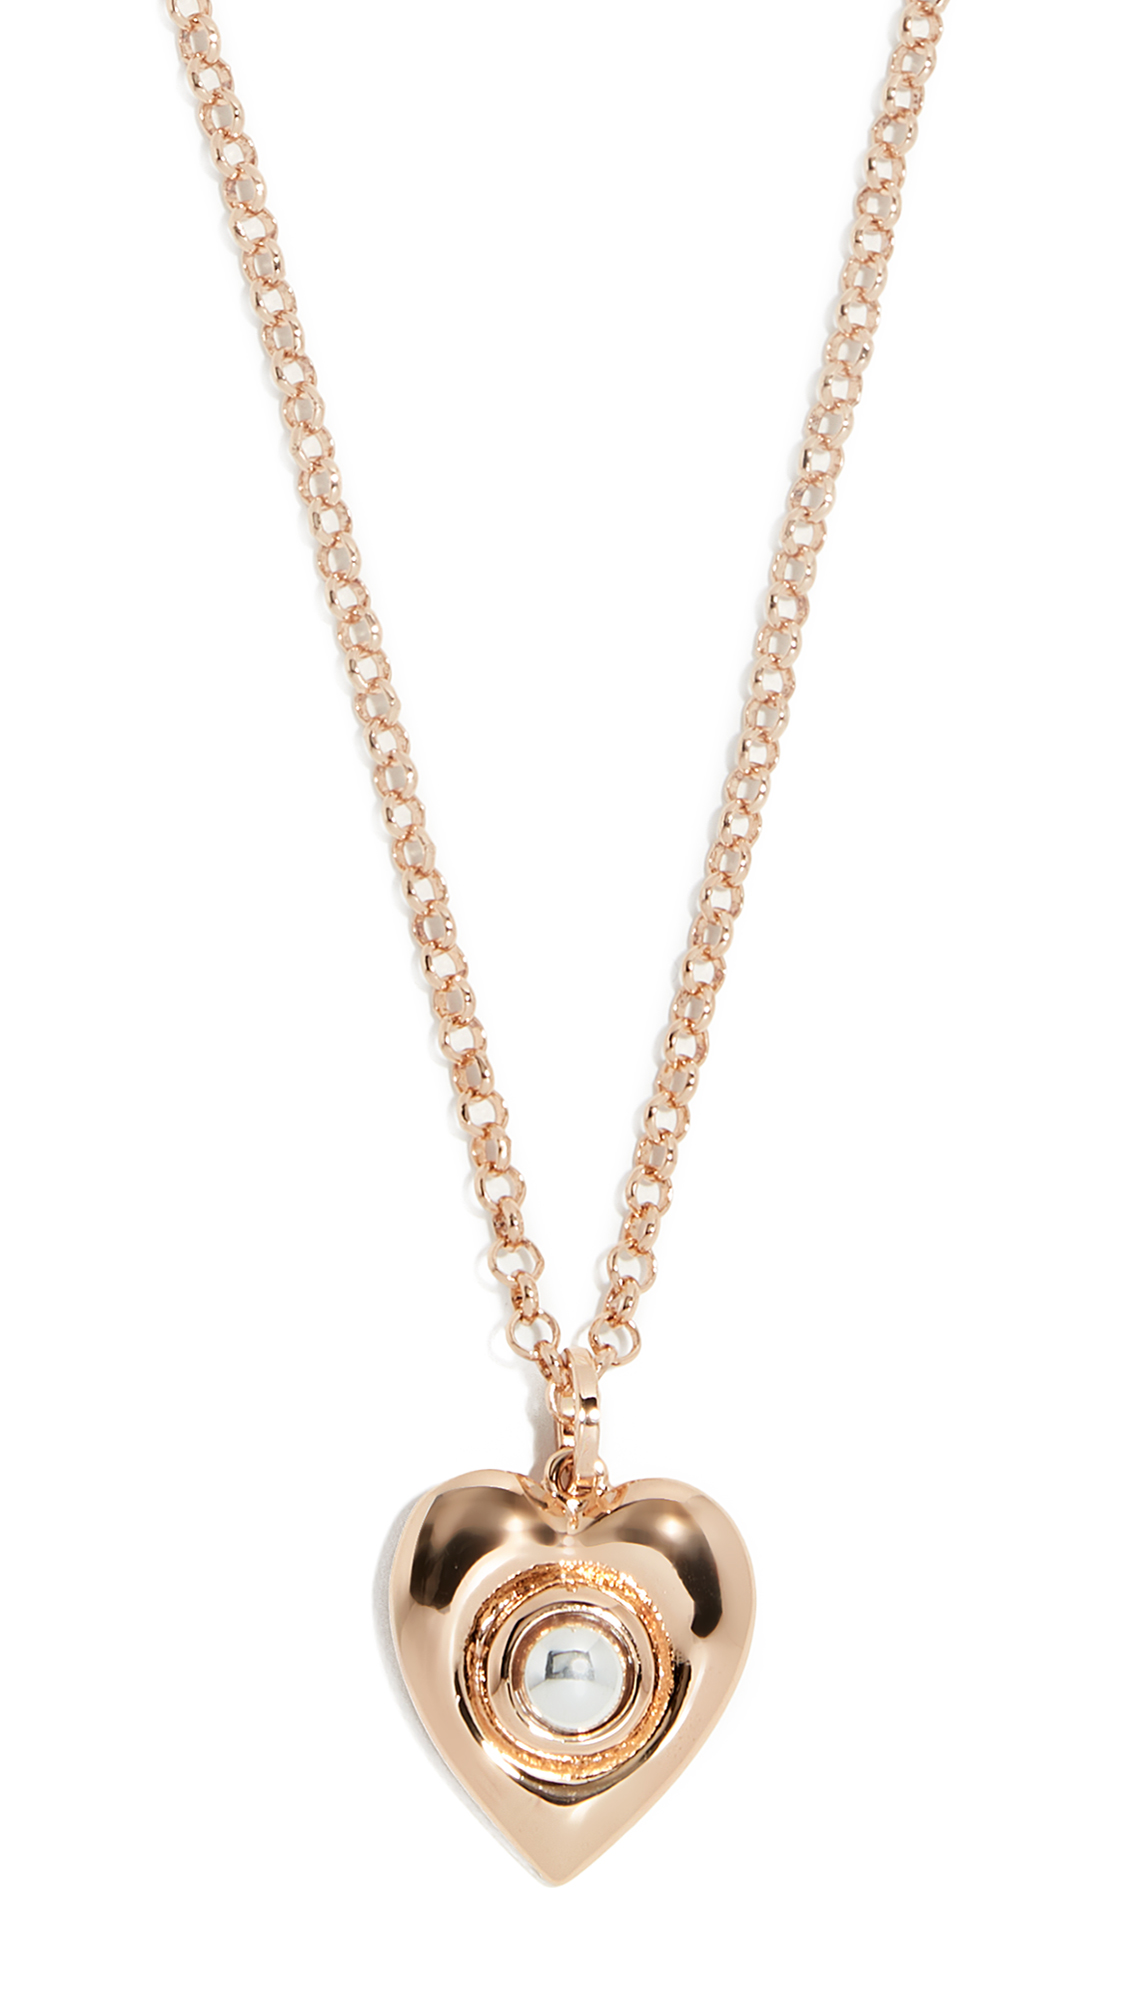 RELIQUIA Small Heart Of Gold Necklace in Yellow Gold/Pearl